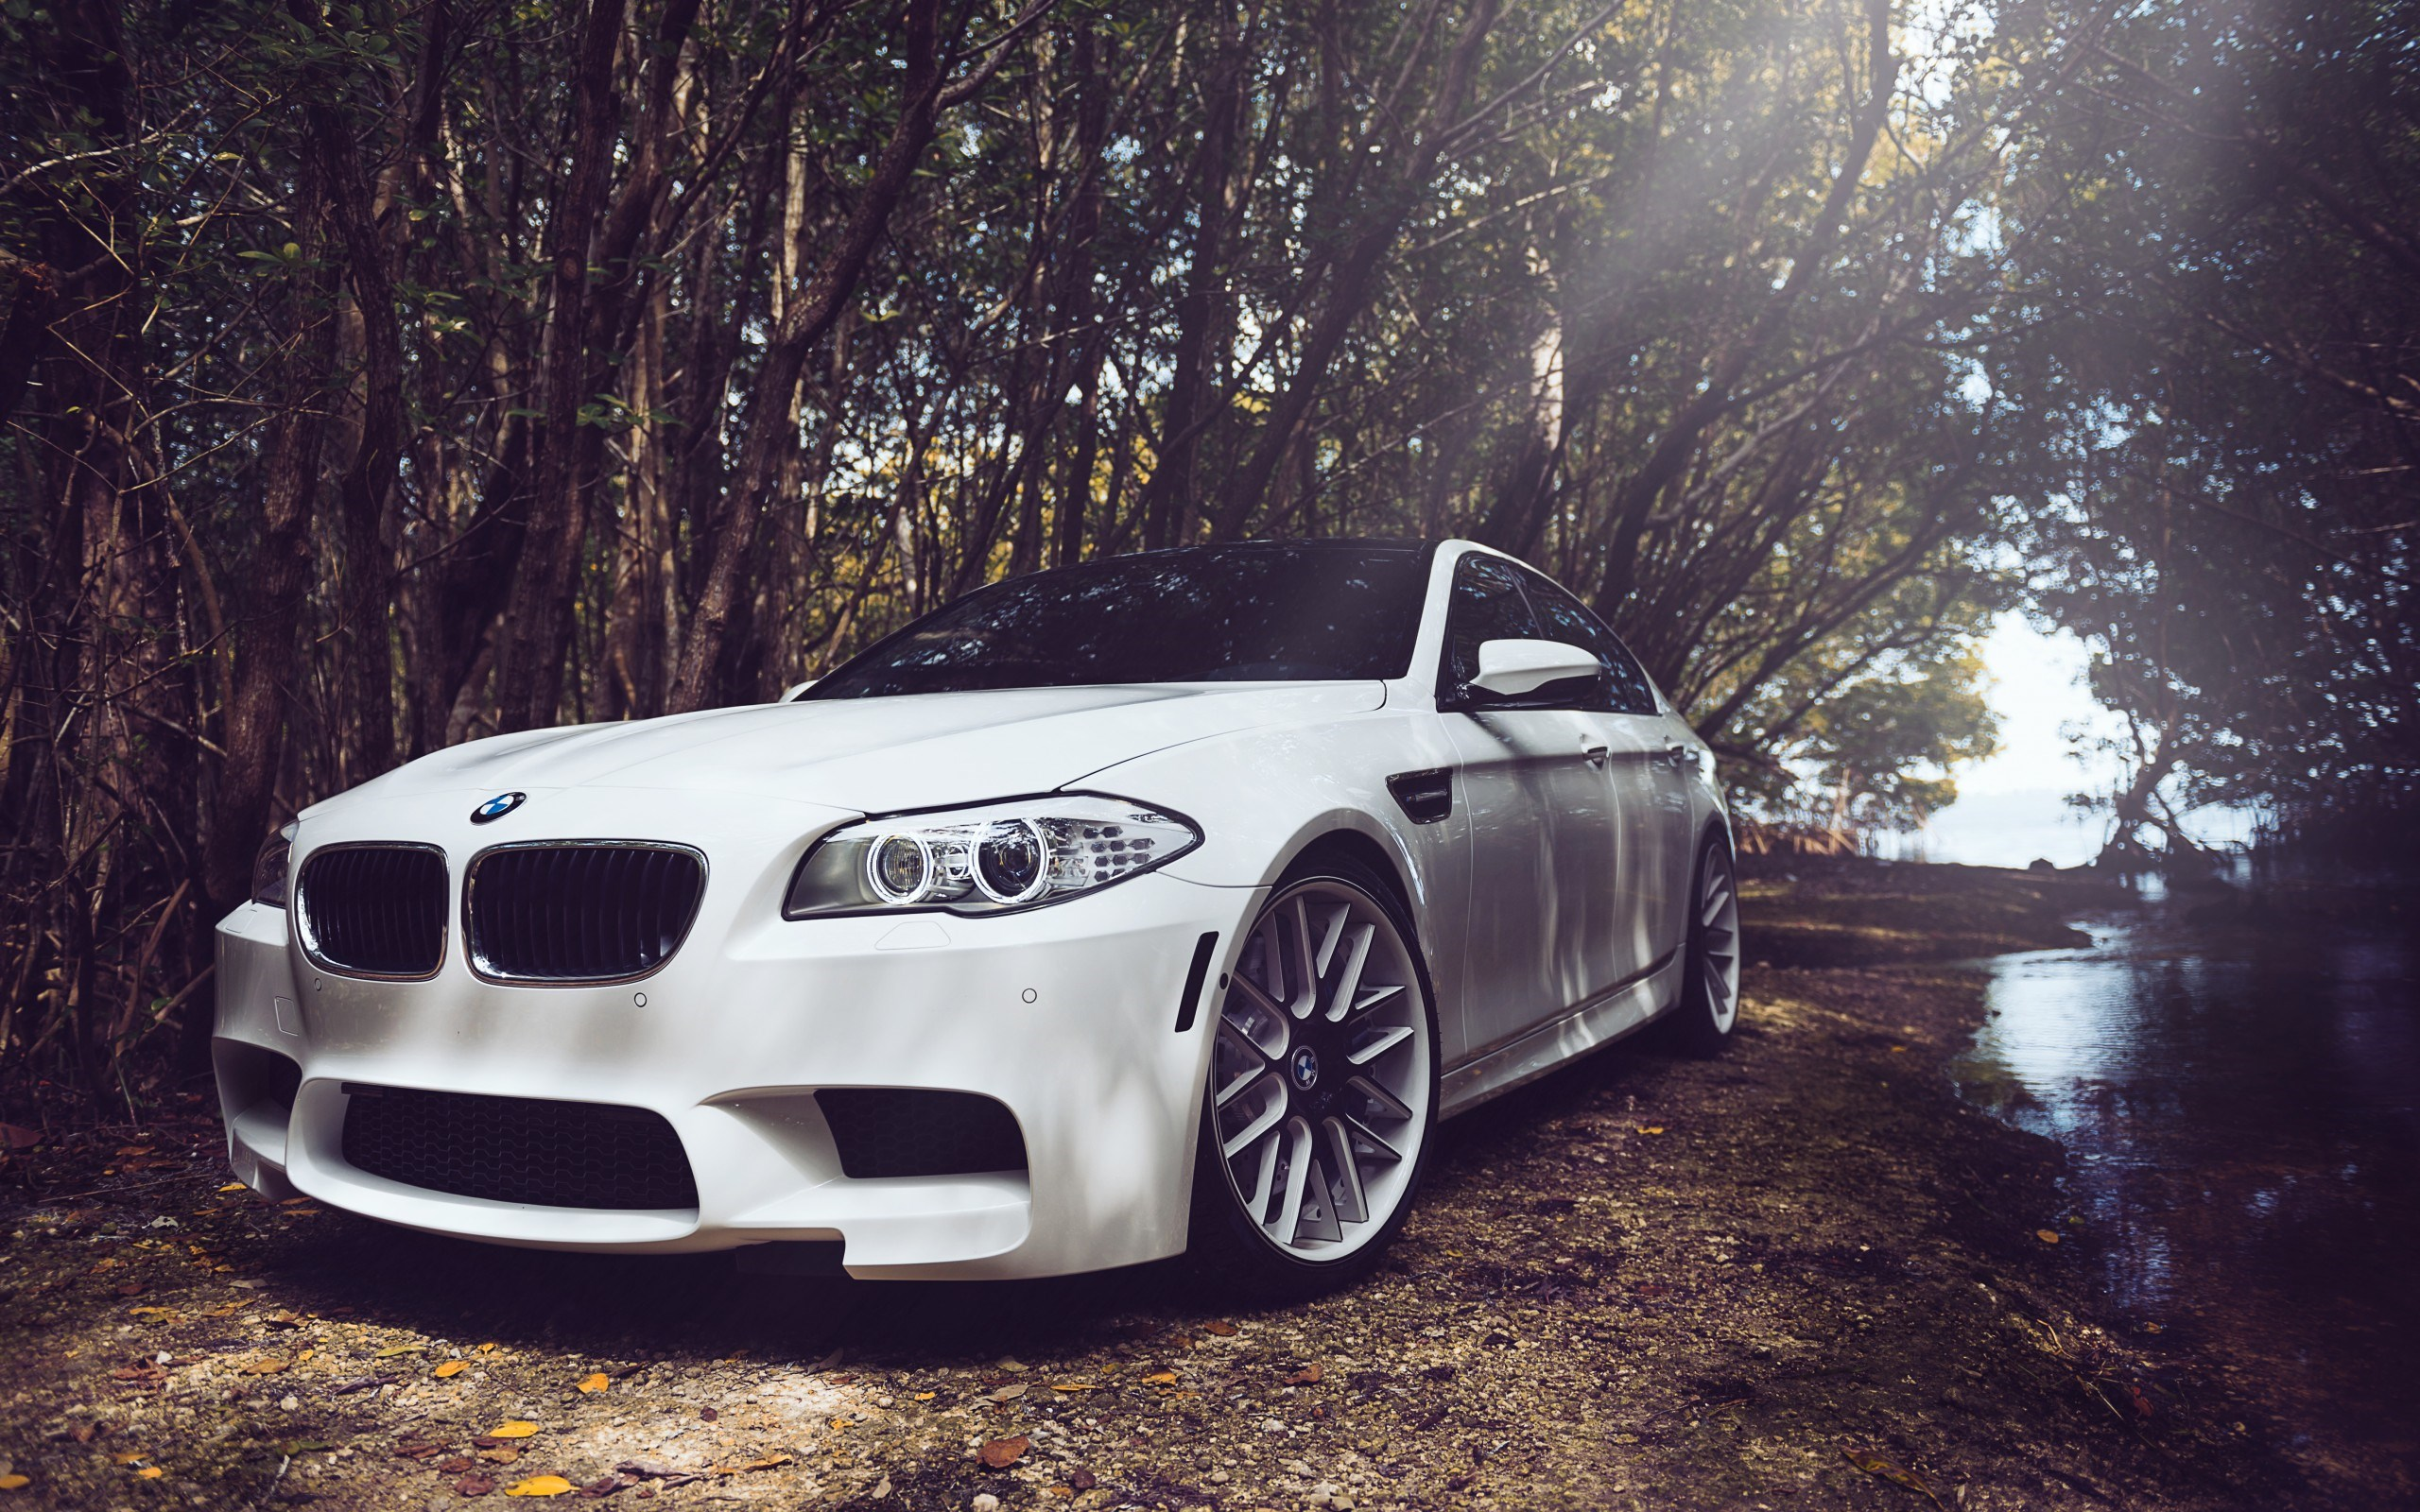 bmw m5 f10 2013 forest trees auto picture white car hd wallpaper 2560x1600